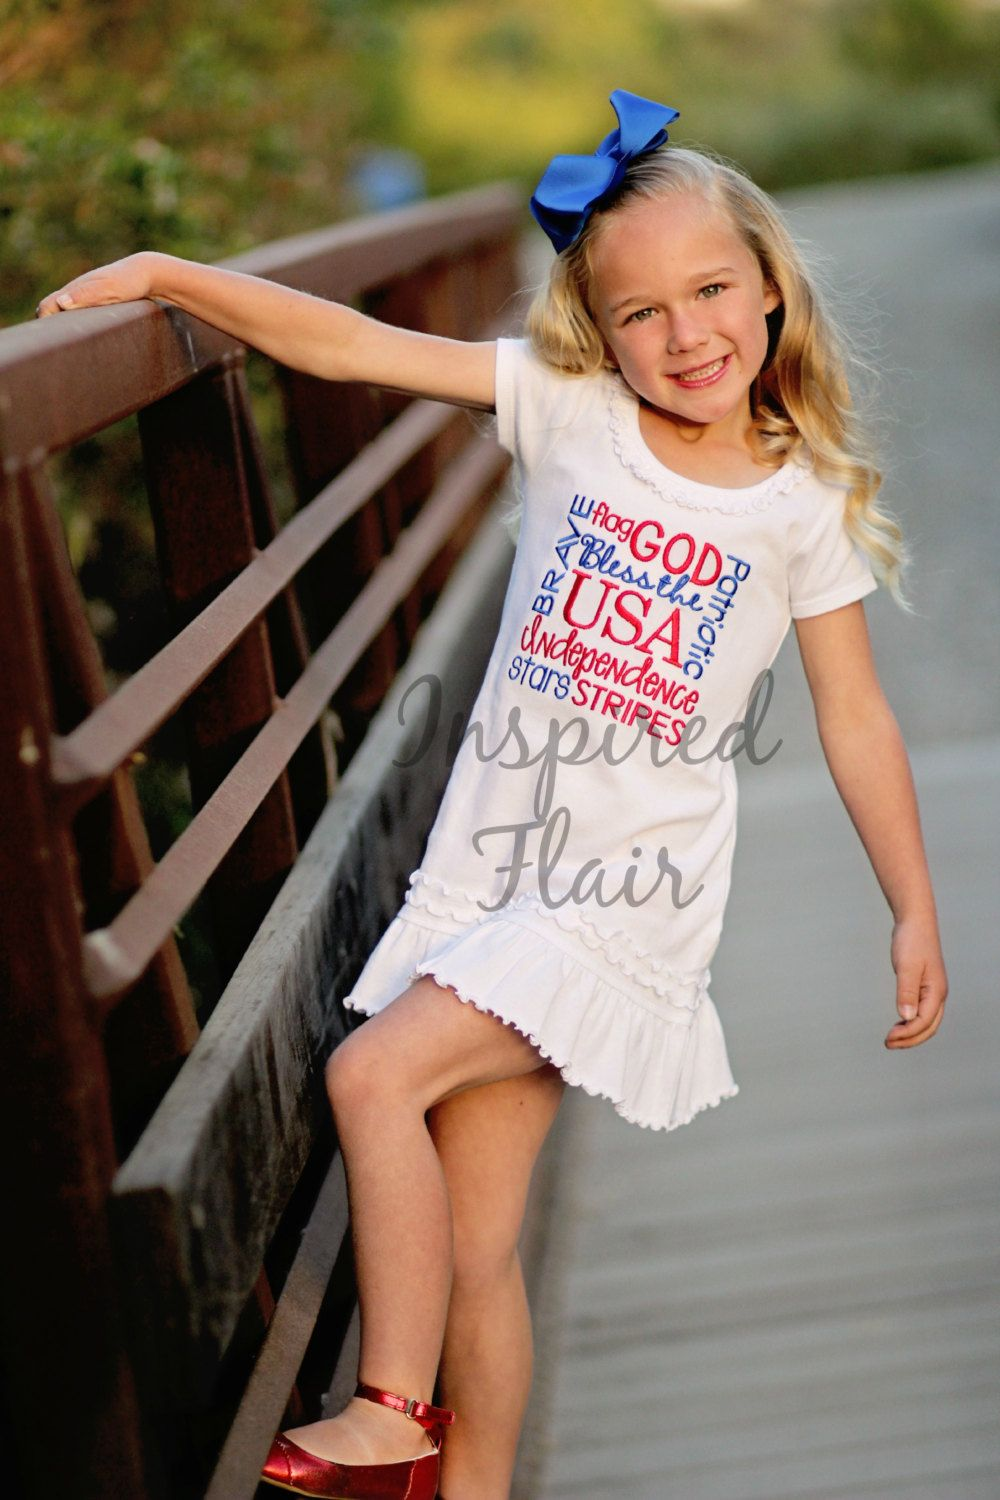 July 4th Embroidered Dress- Shirt- Independance Day- Red White Blue- Patriotic- Girls - Bodysuit -Picnic- Holiday - USA Stars Stripes by InspiredFlair on Etsy